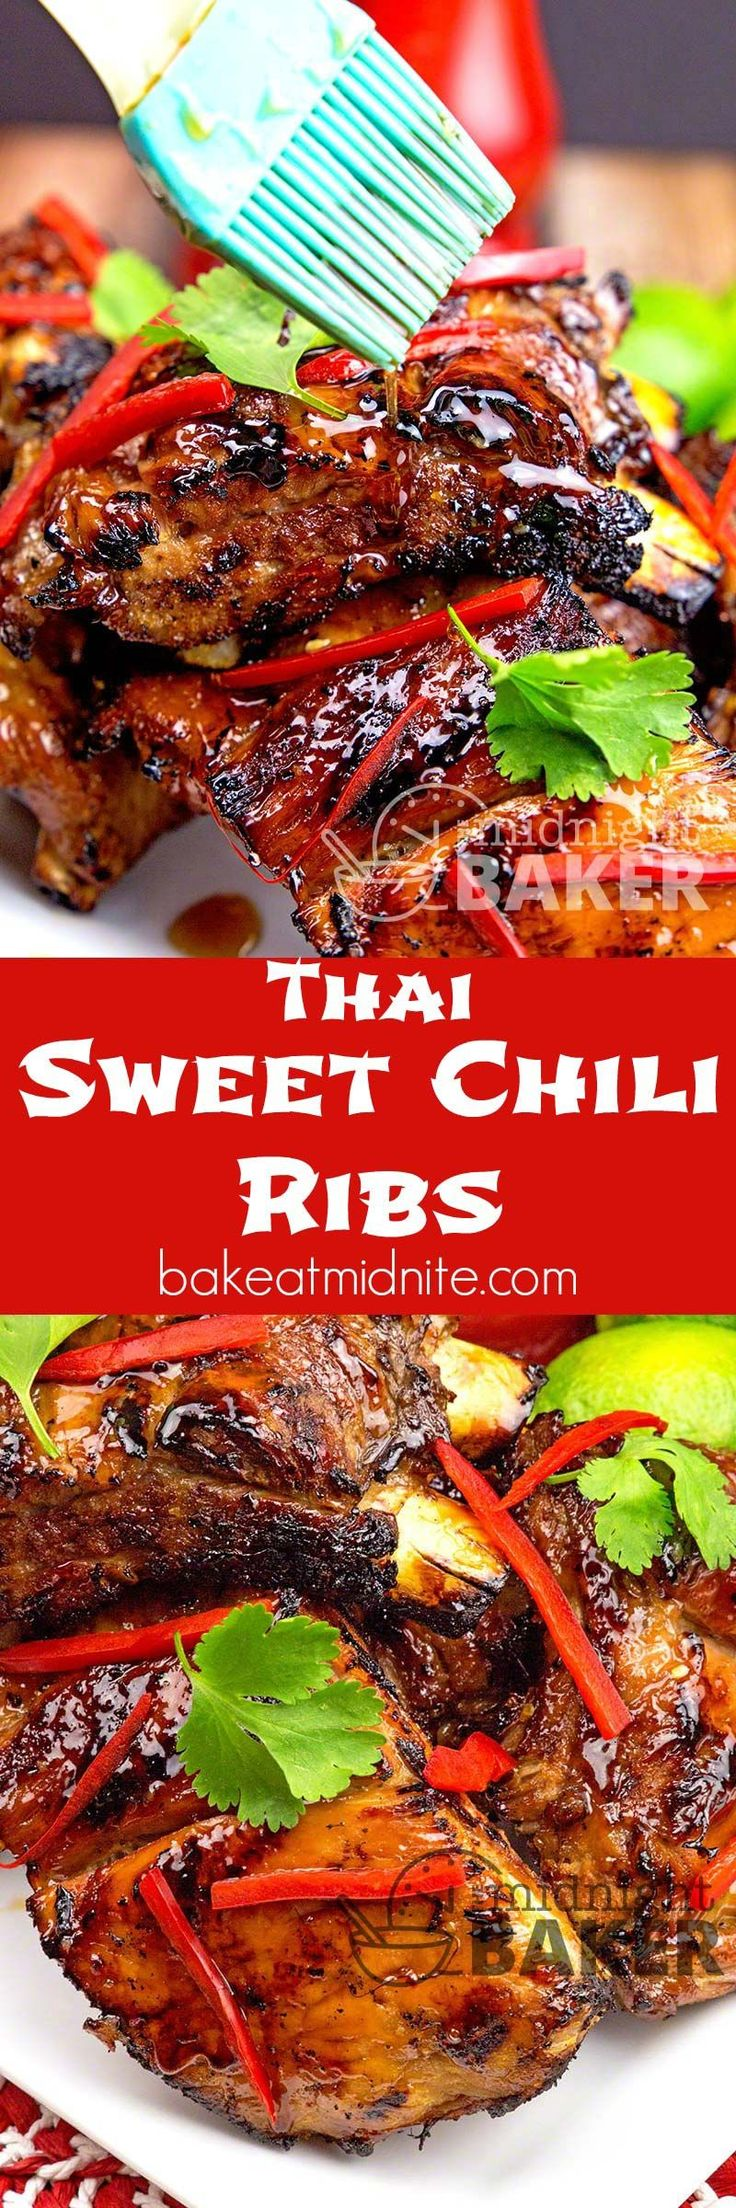 594 best baby food beef images on pinterest baby foods baby food yummy pork baby back ribs with a sweet and tangy thai chili sauce glaze baby food recipesthai food recipeschinese forumfinder Images